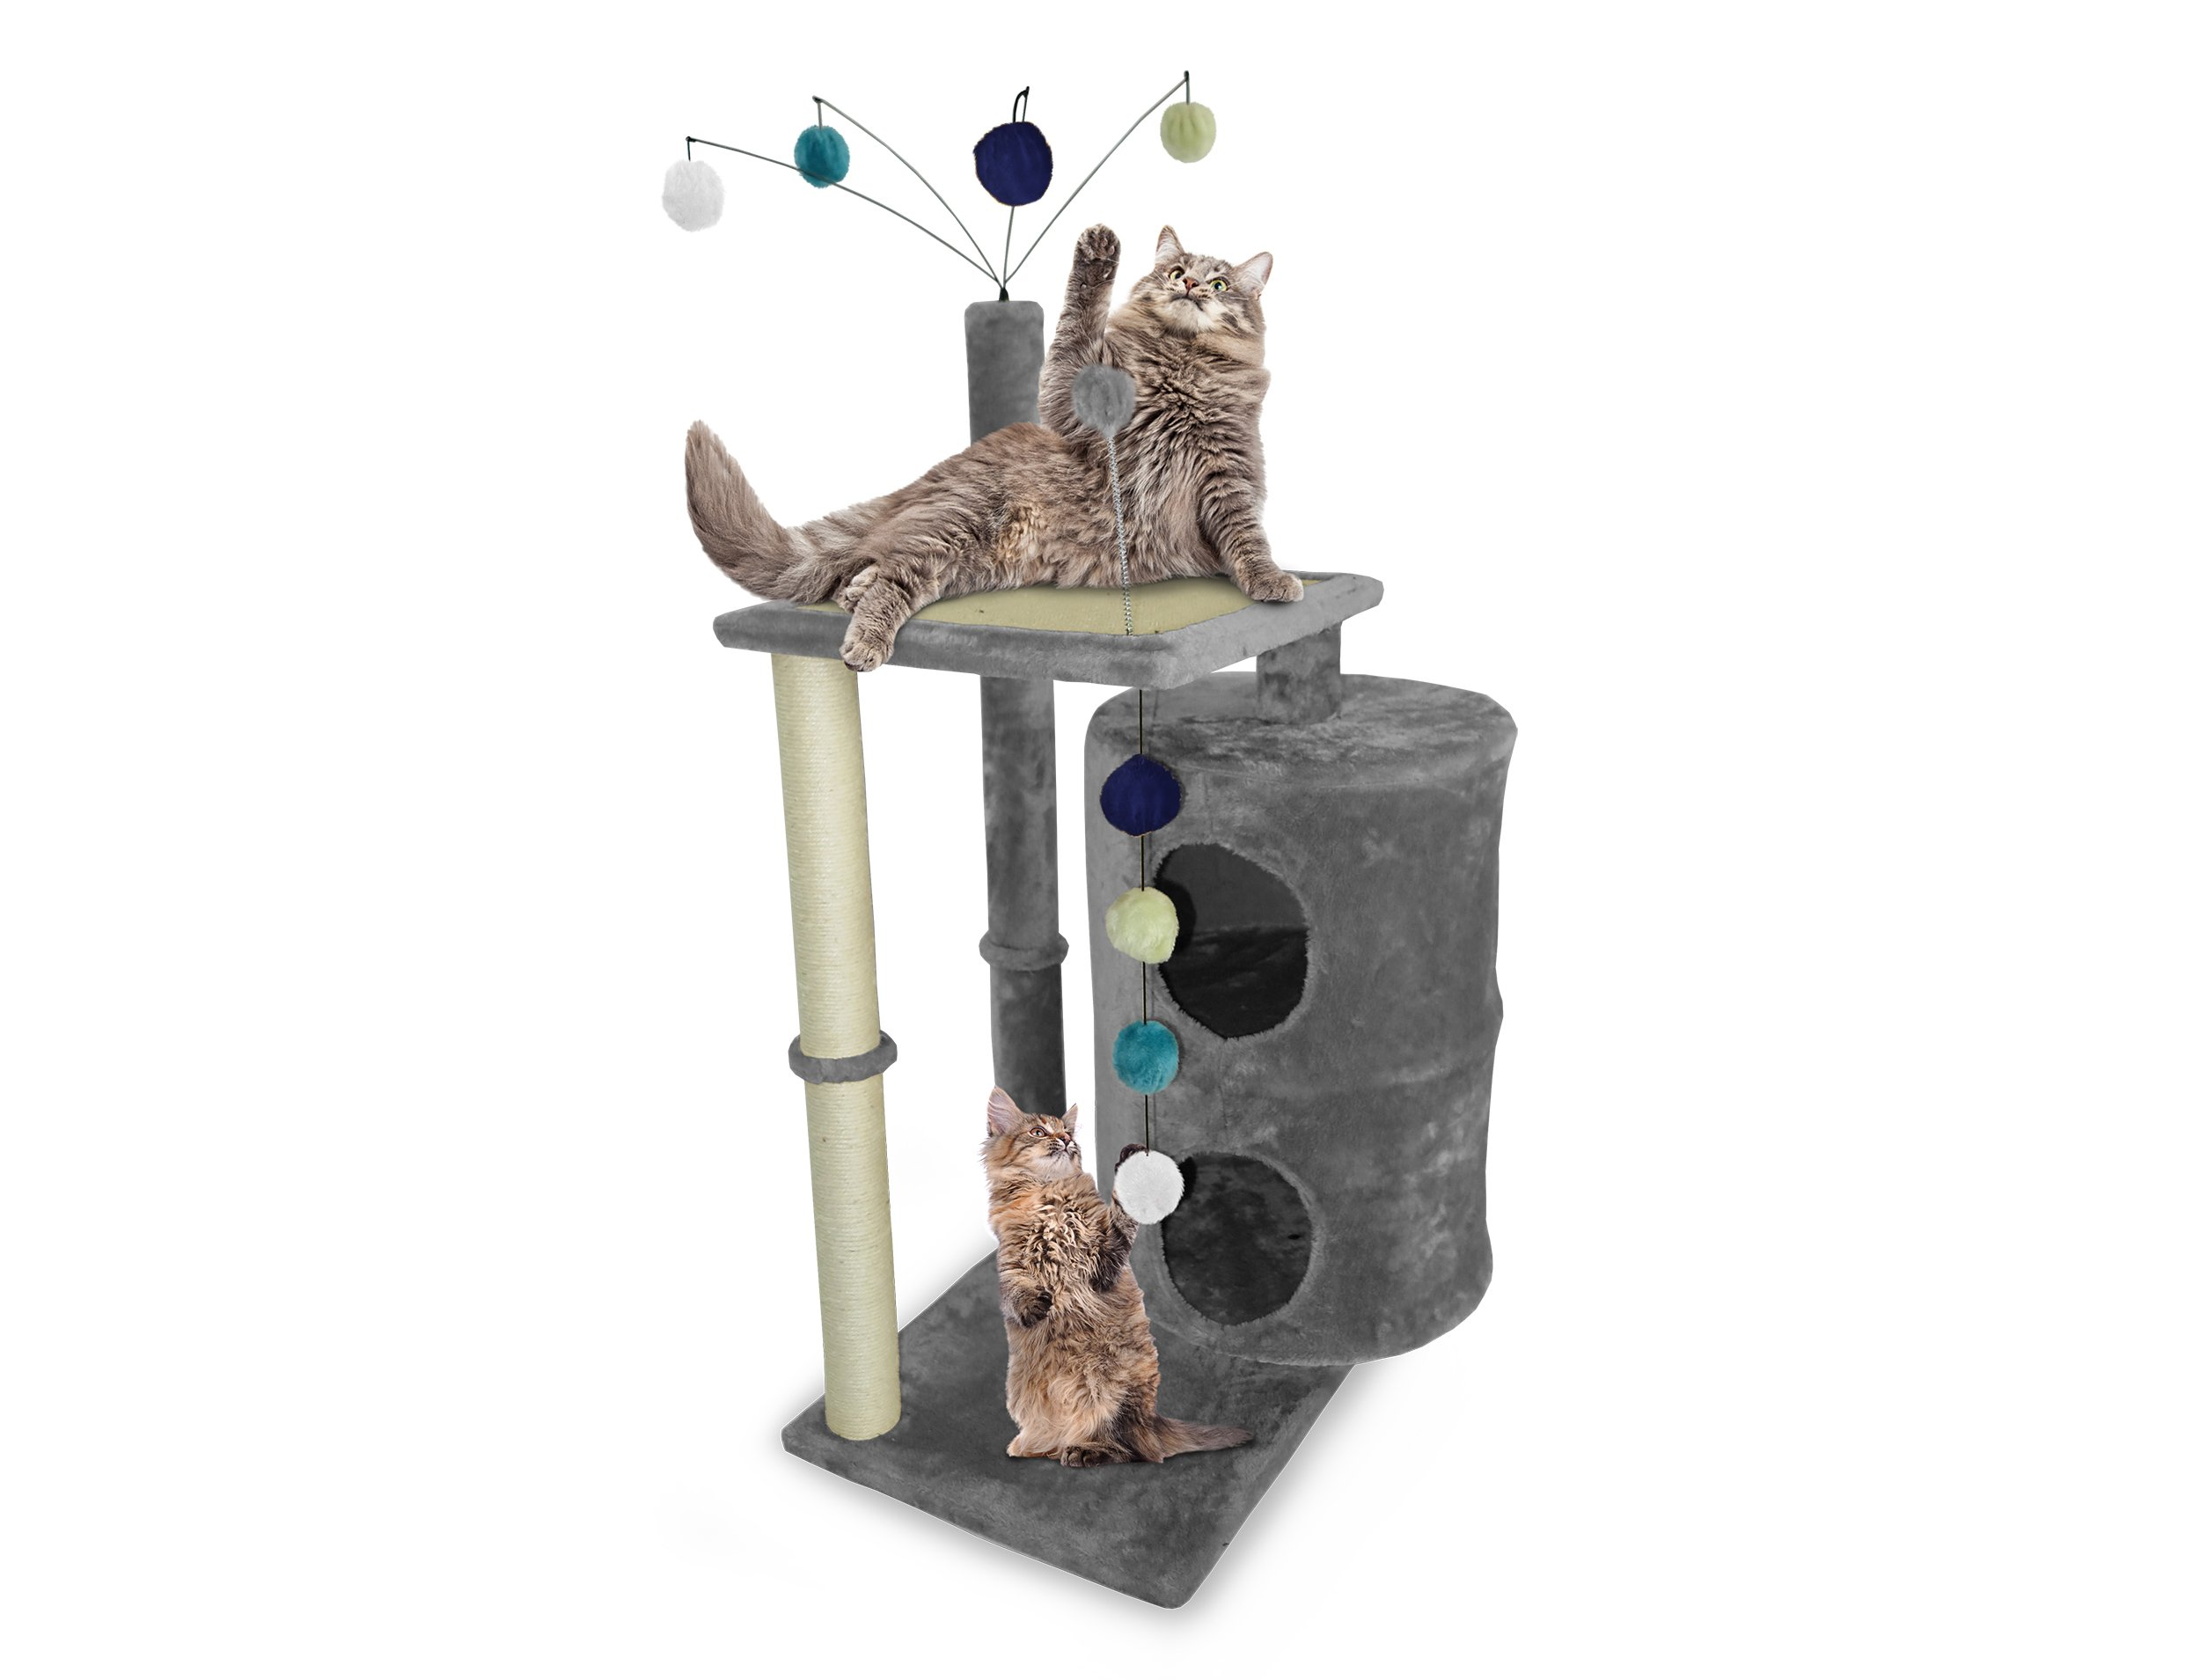 Furhaven Pet Cat Tree | Tiger Tough Cat Tree House Furniture for Cats & Kittens, Cat Table Playground, Gray